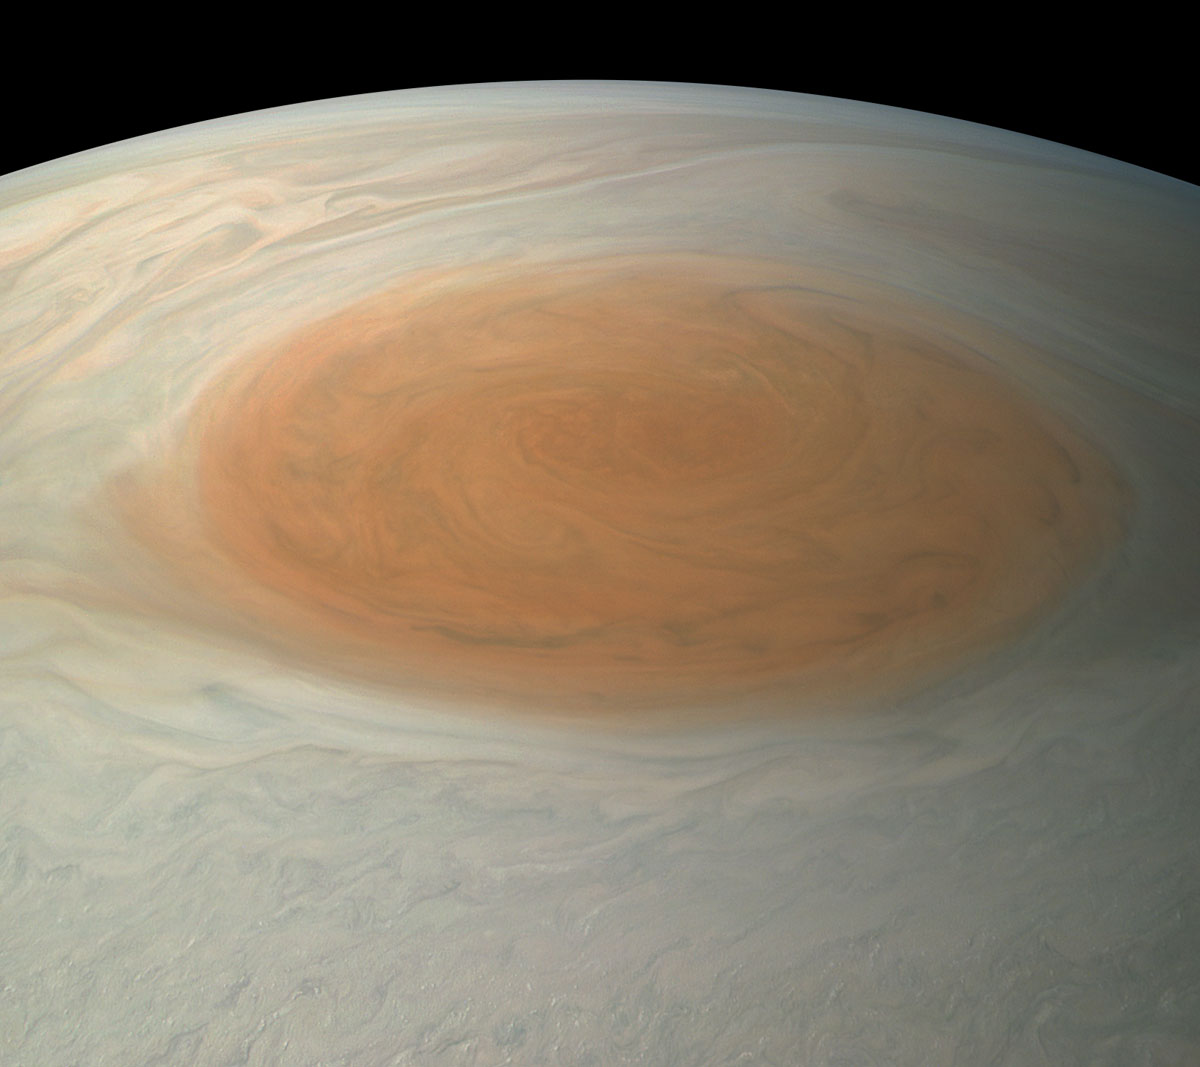 Jupiter Juno Great Red Spot